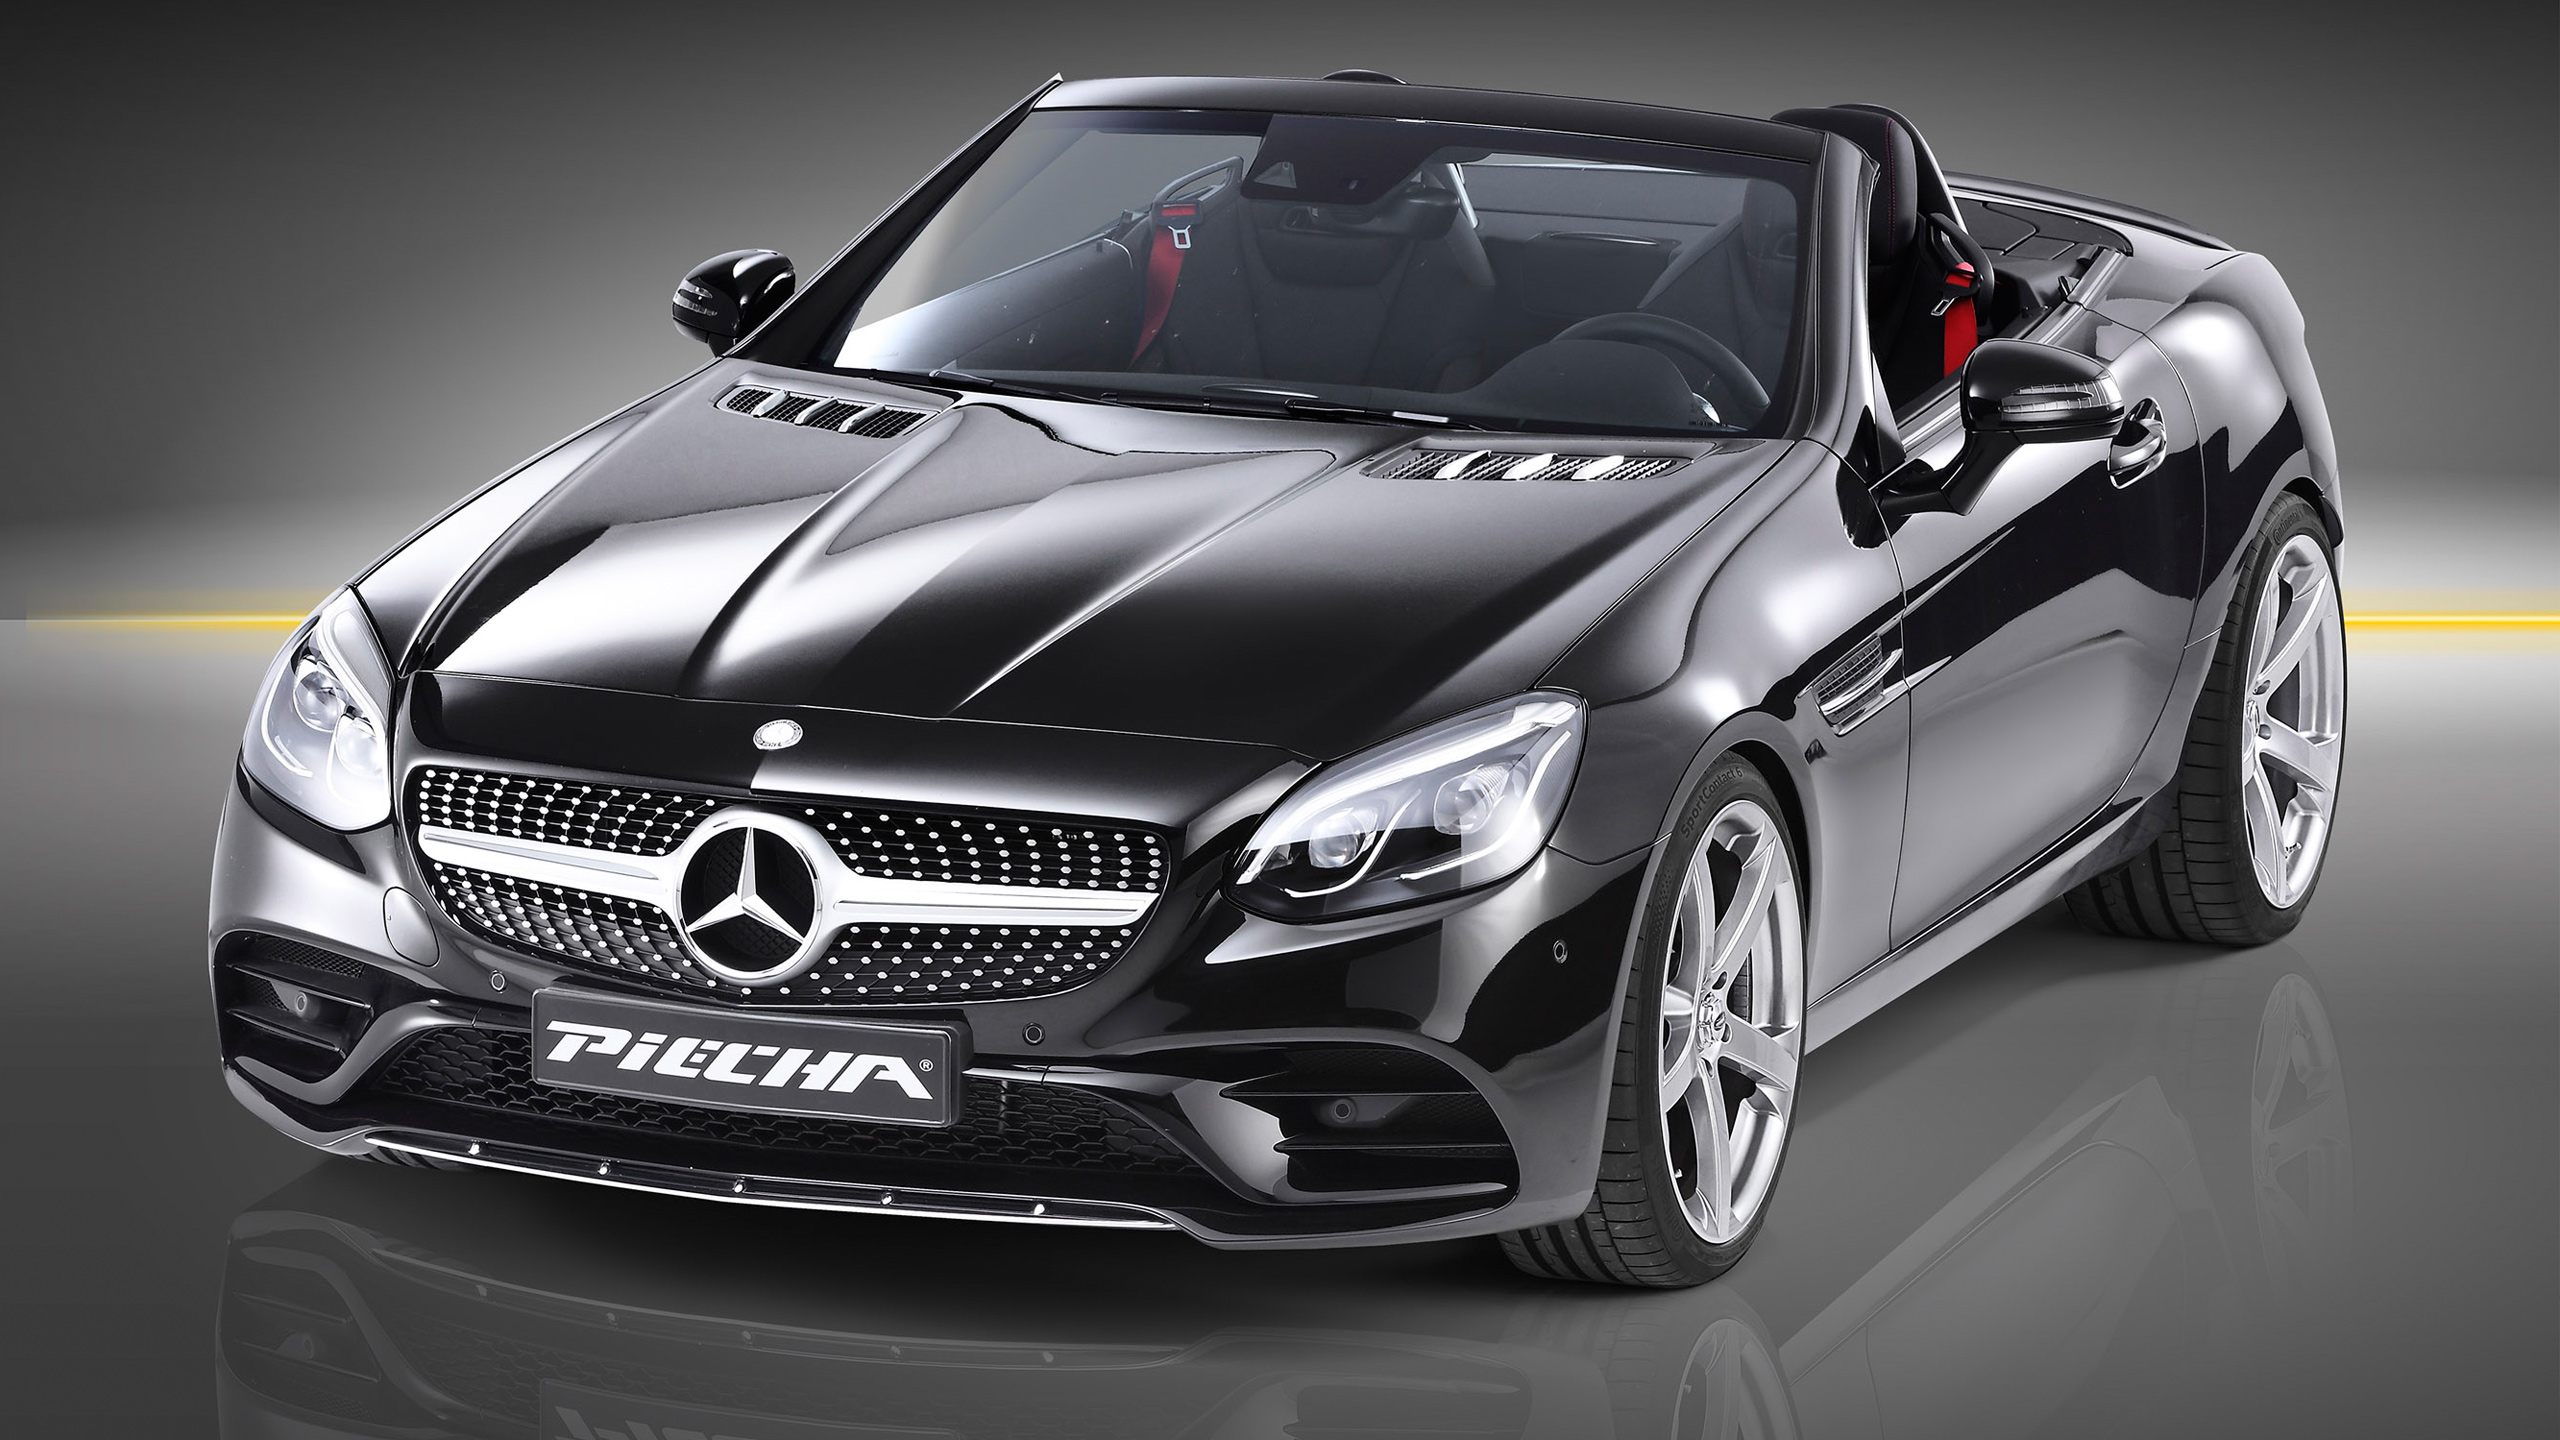 2016 piecha design mercedes benz slc wallpaper | hd car wallpapers